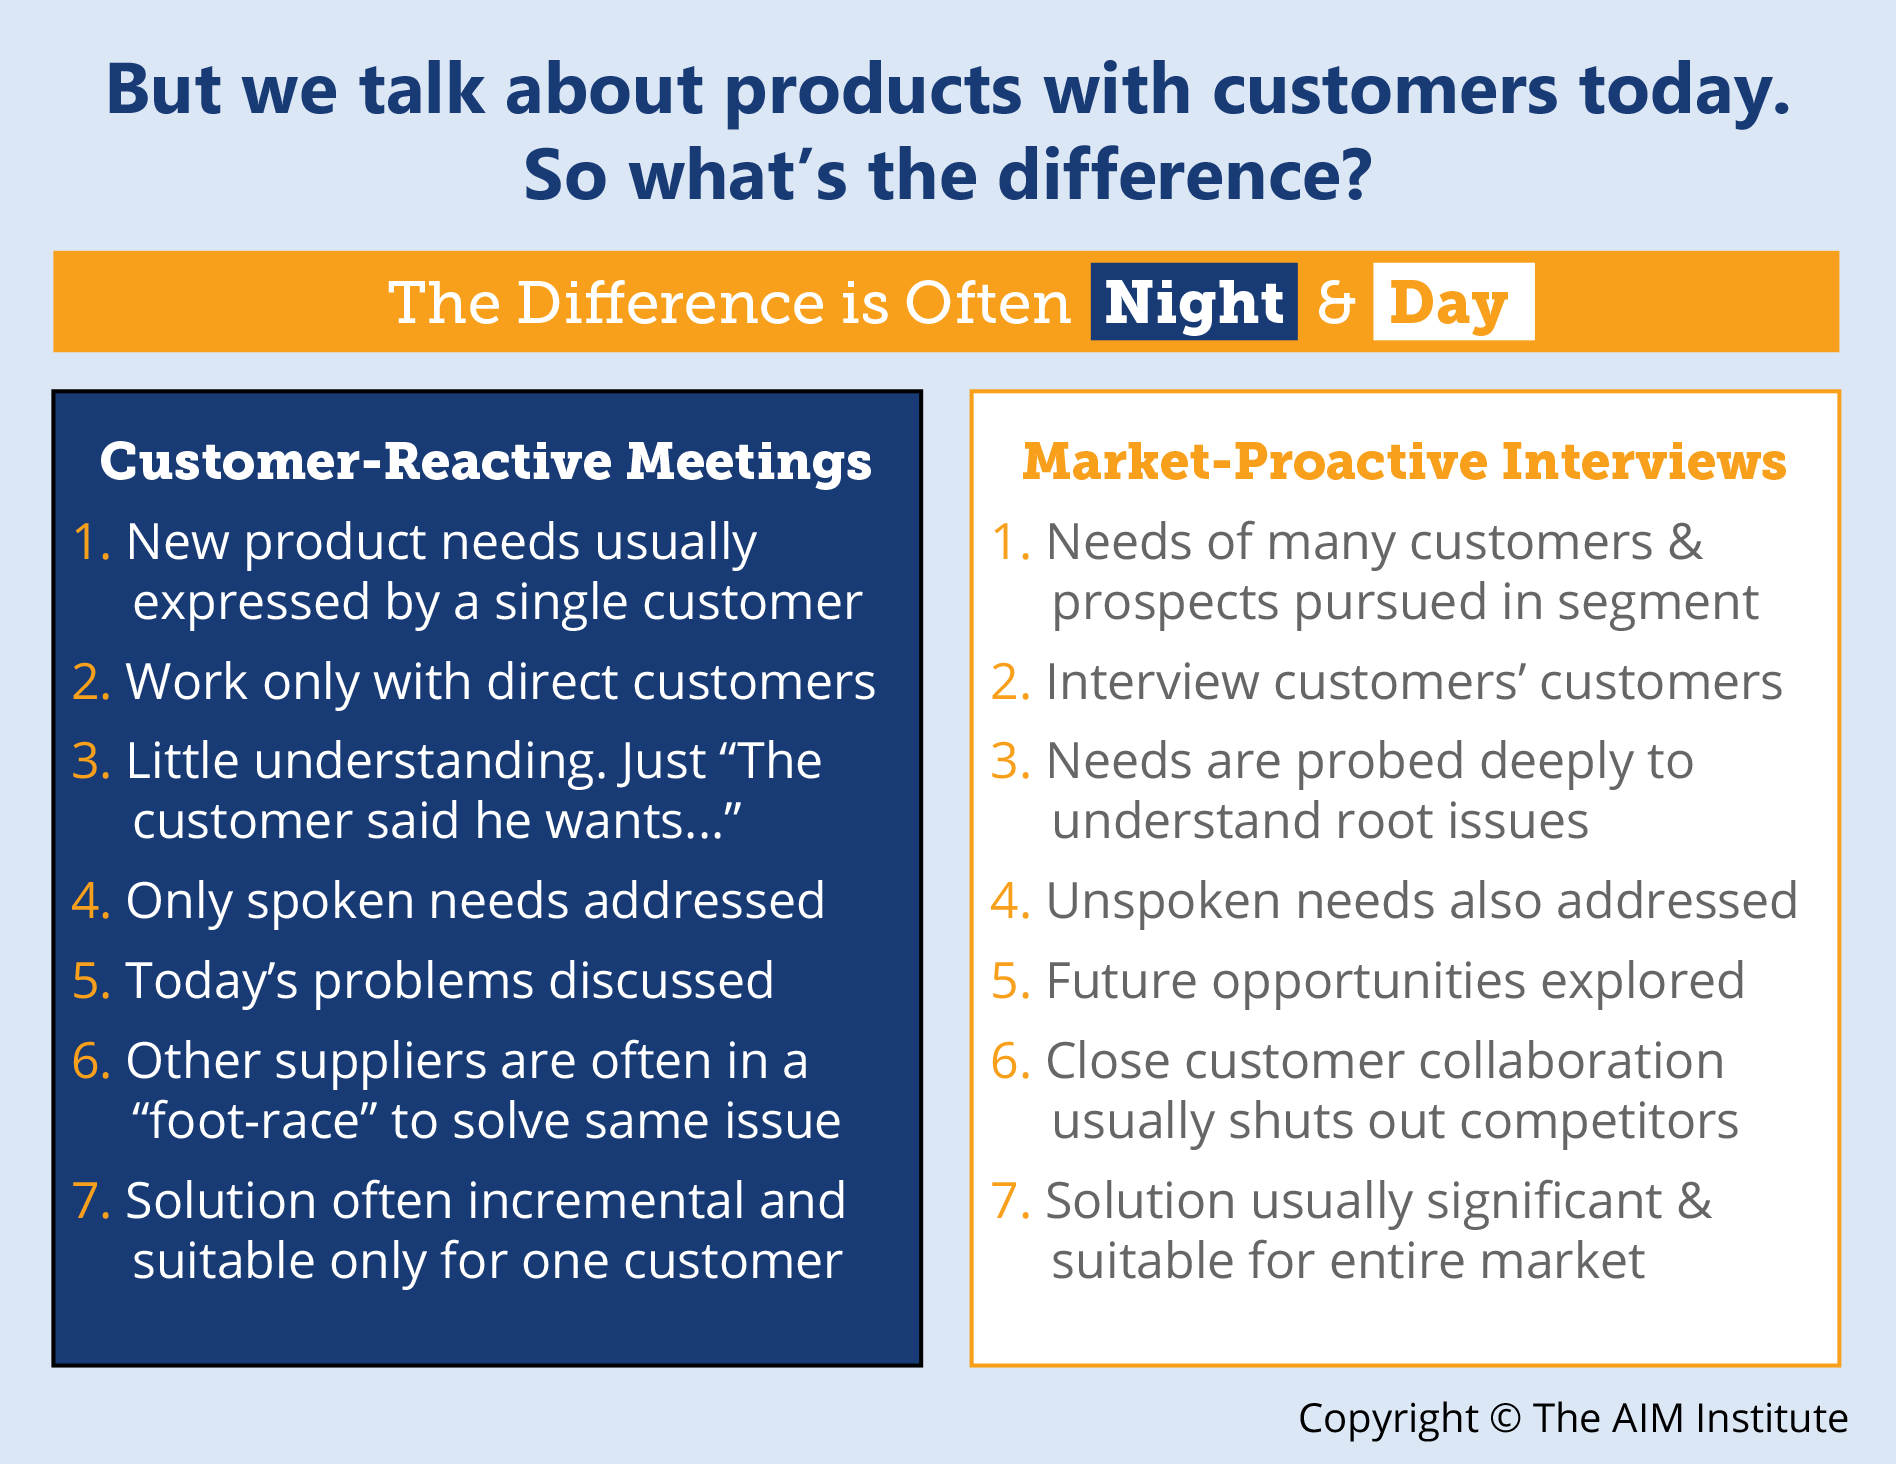 market proactive interview difference is night and day